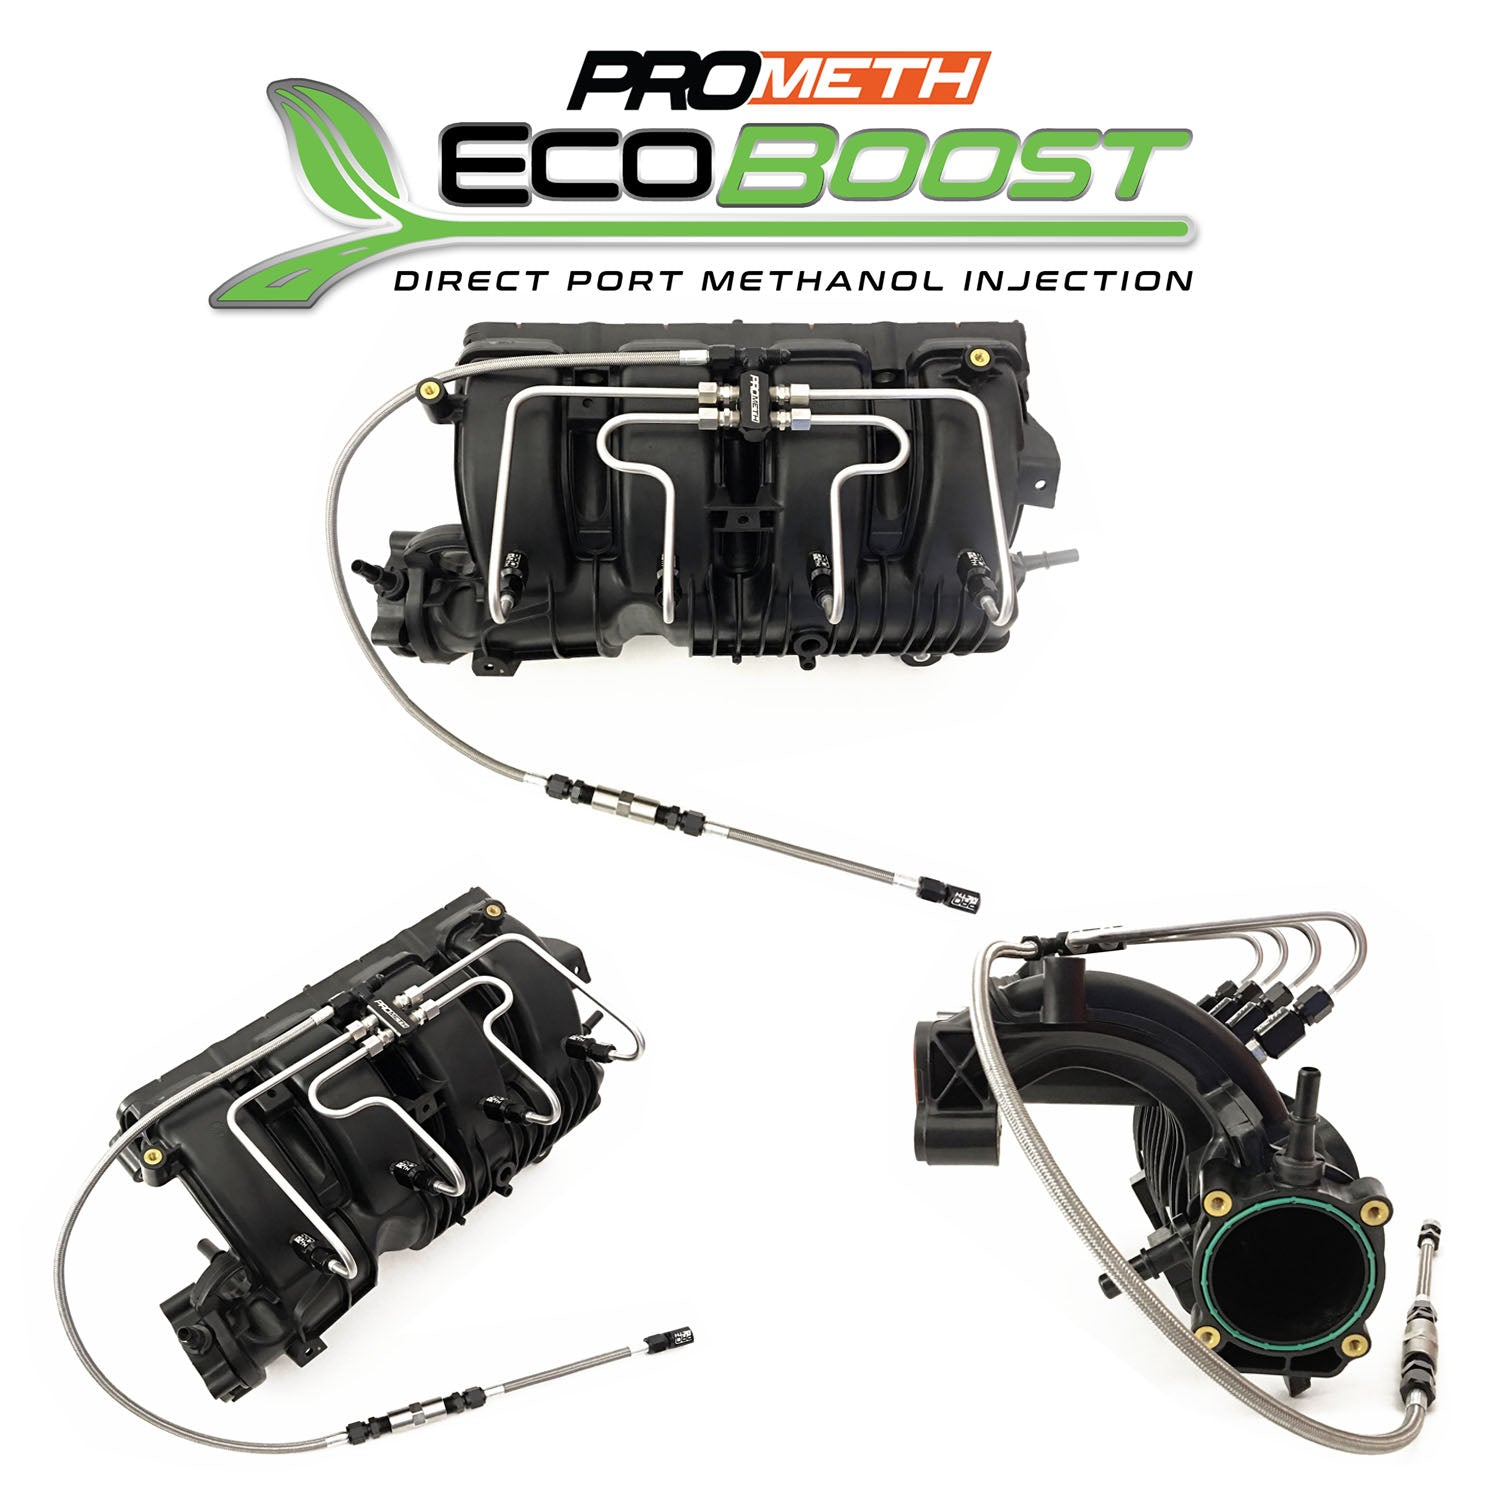 Ford Mustang Ecoboost Direct Port Methanol Injection System With Pre Compressor Nozzle